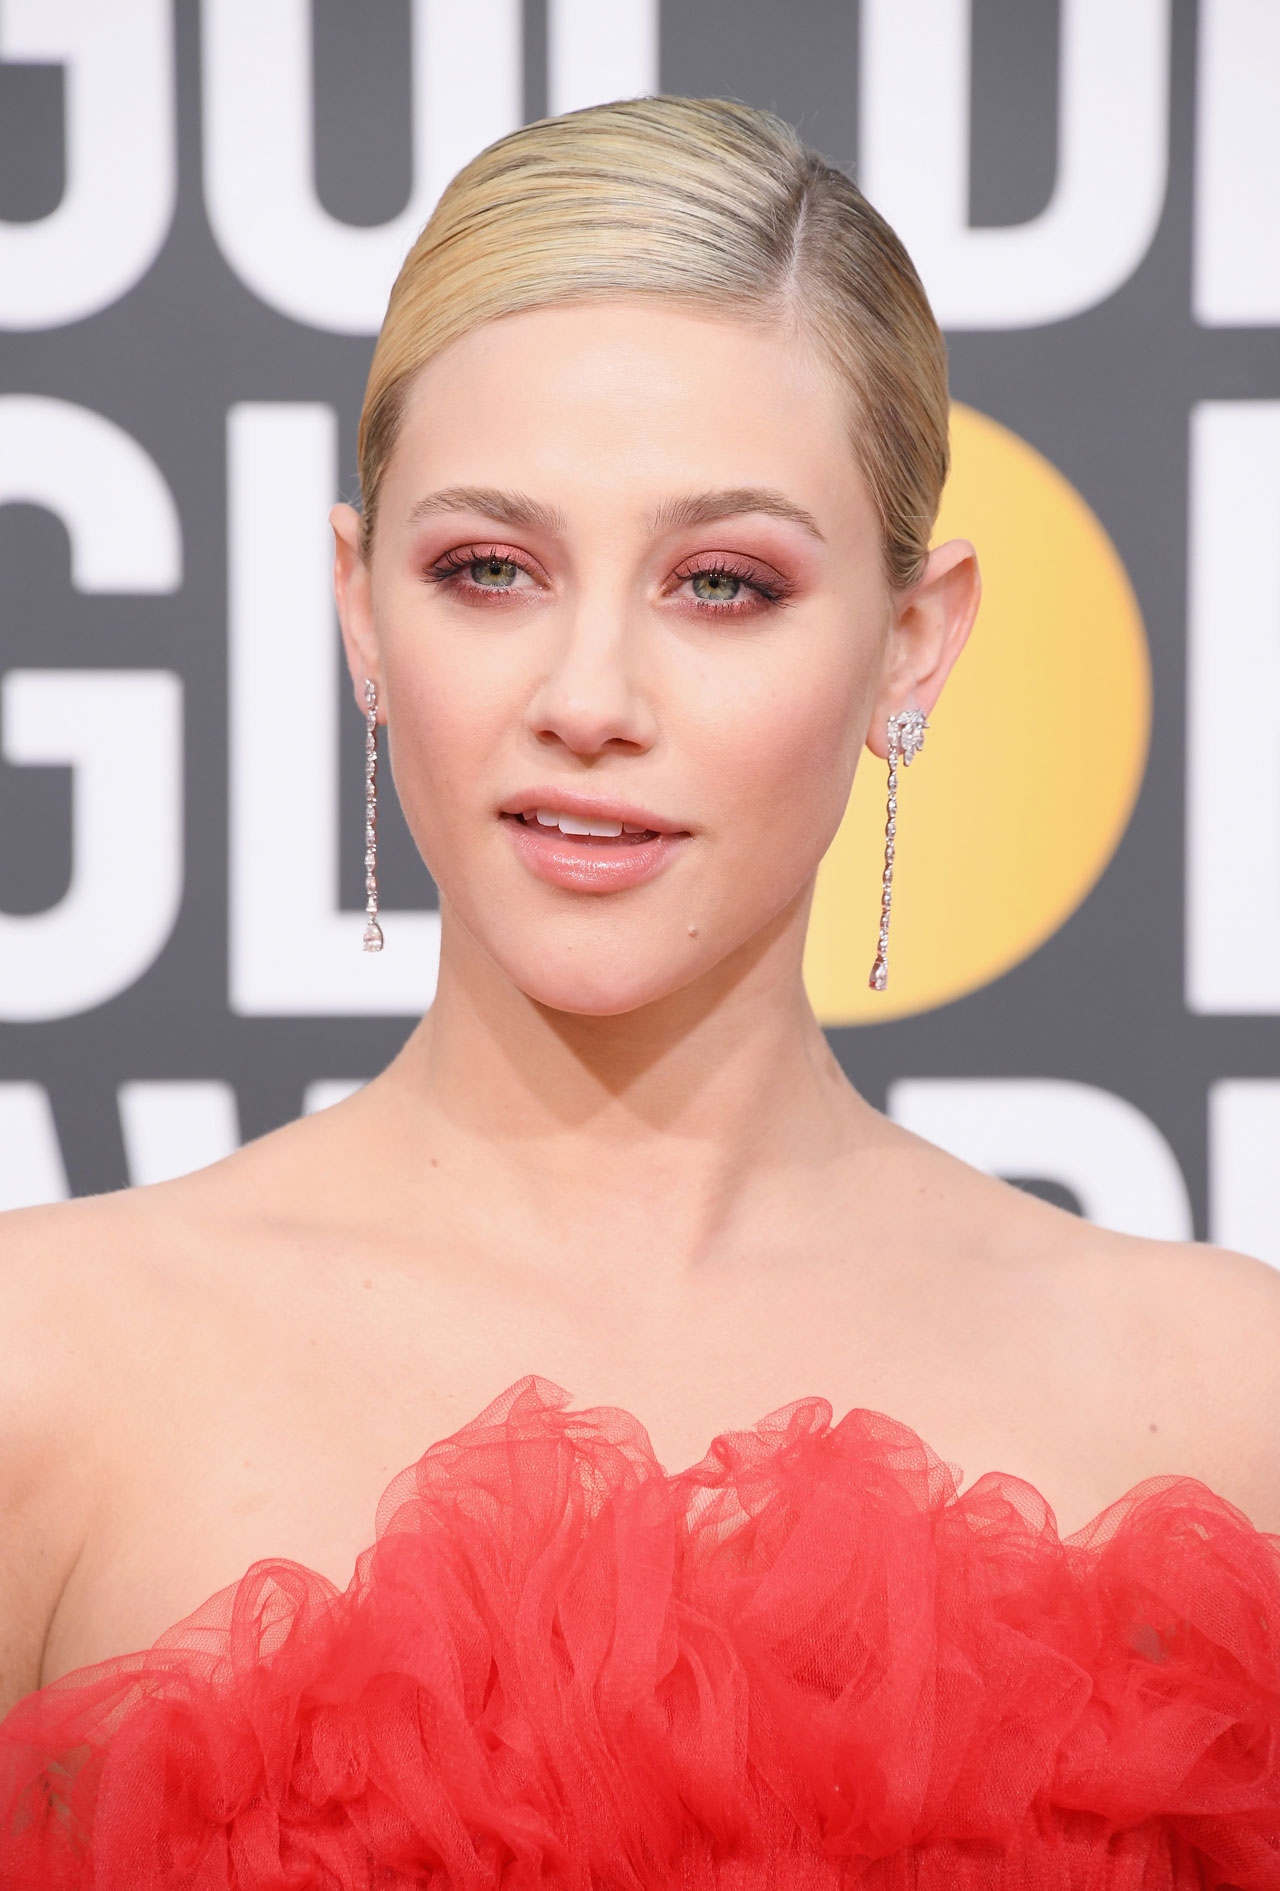 2019 Lili Reinhart nude photos 2019